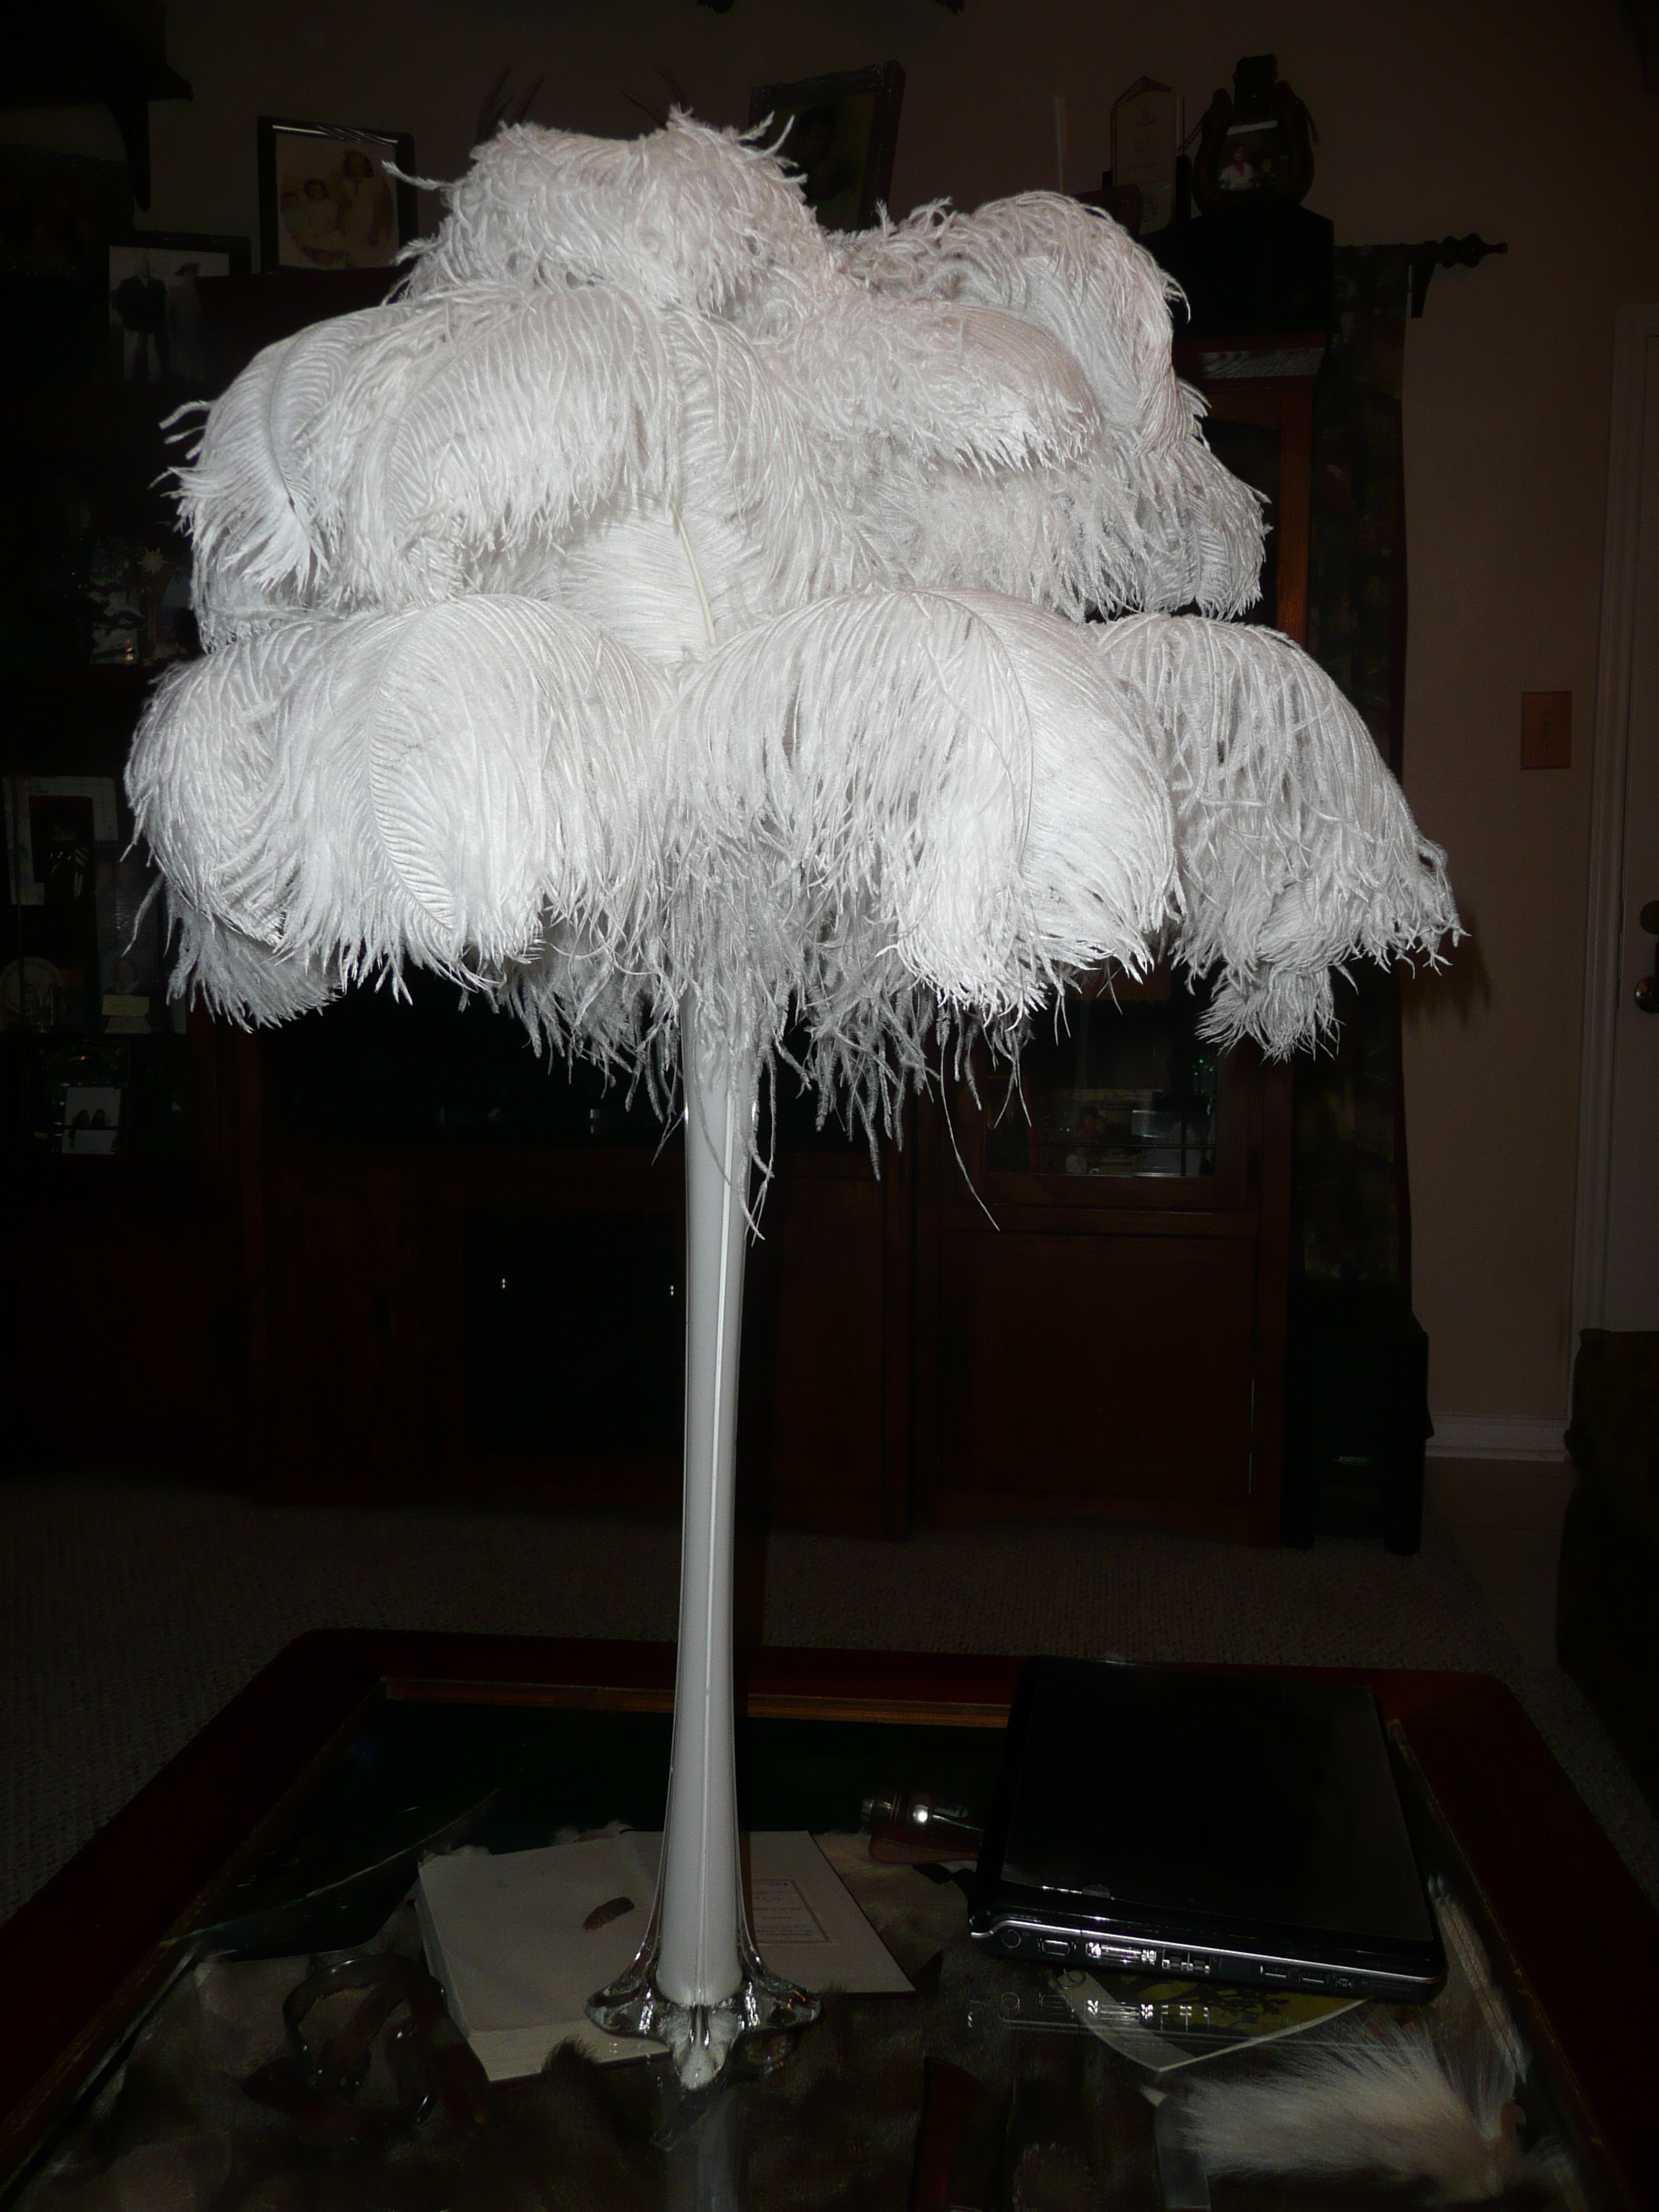 Beauty, Reception, Flowers & Decor, Decor, Feathers, Centerpieces, Centerpiece, Ostrich